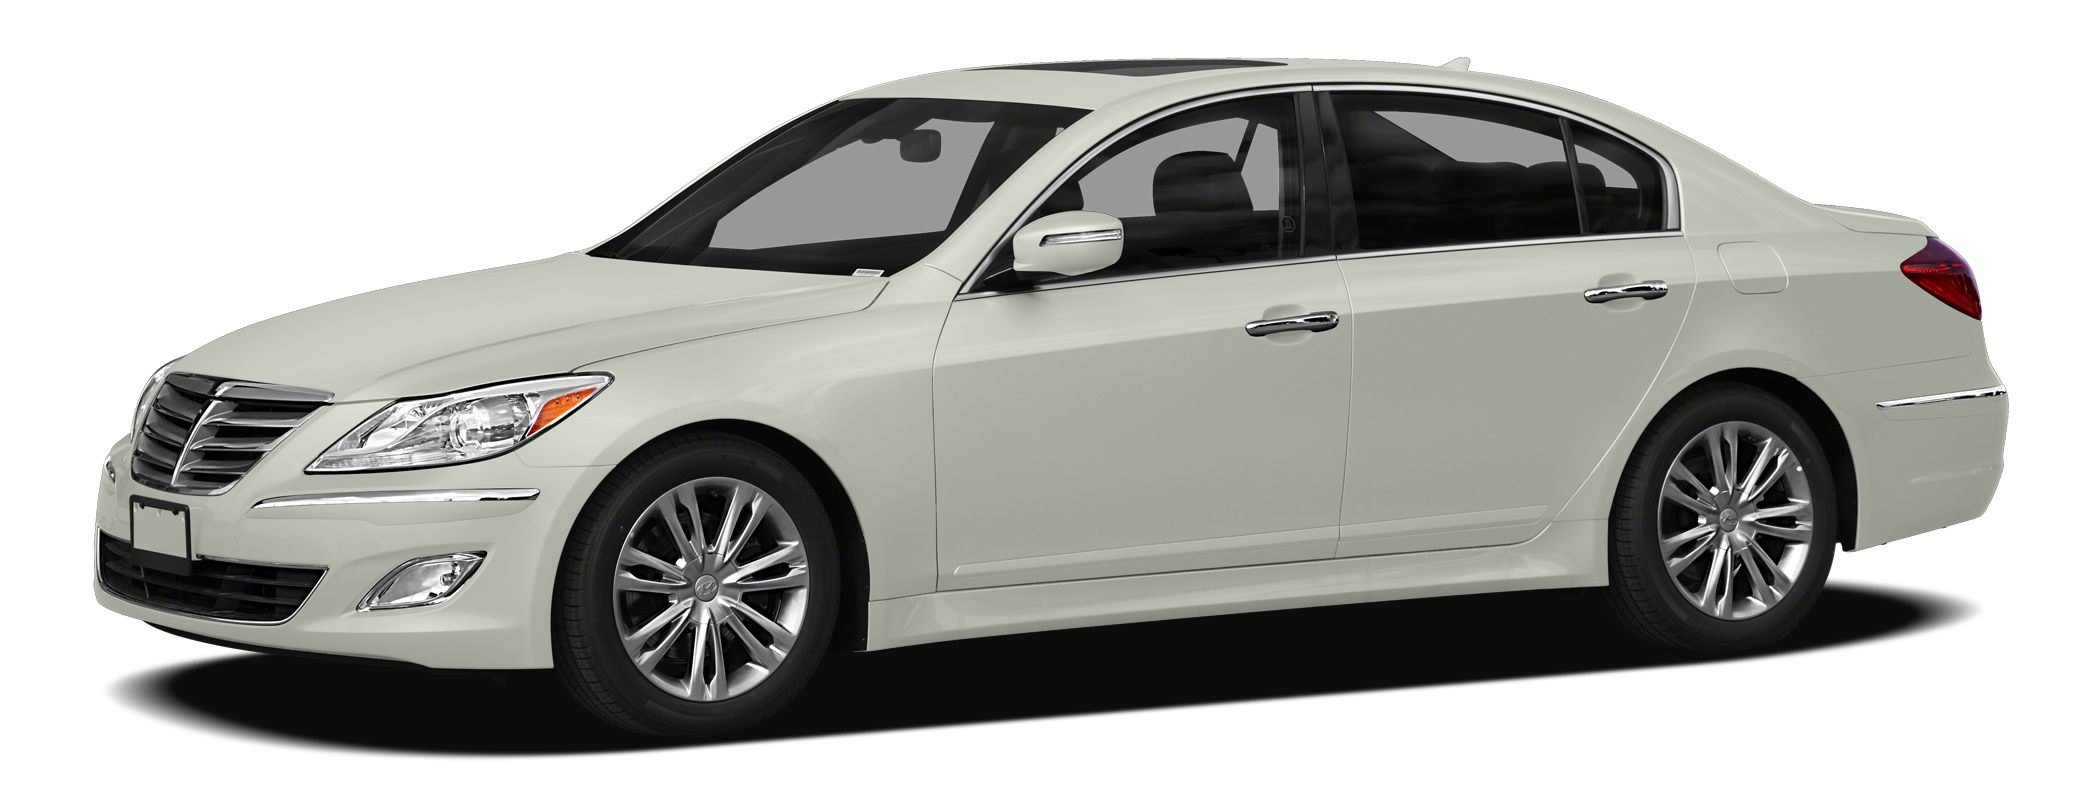 2012 Hyundai Genesis 46 Must finance with HMFC to collect all and full discounts Brand New  S